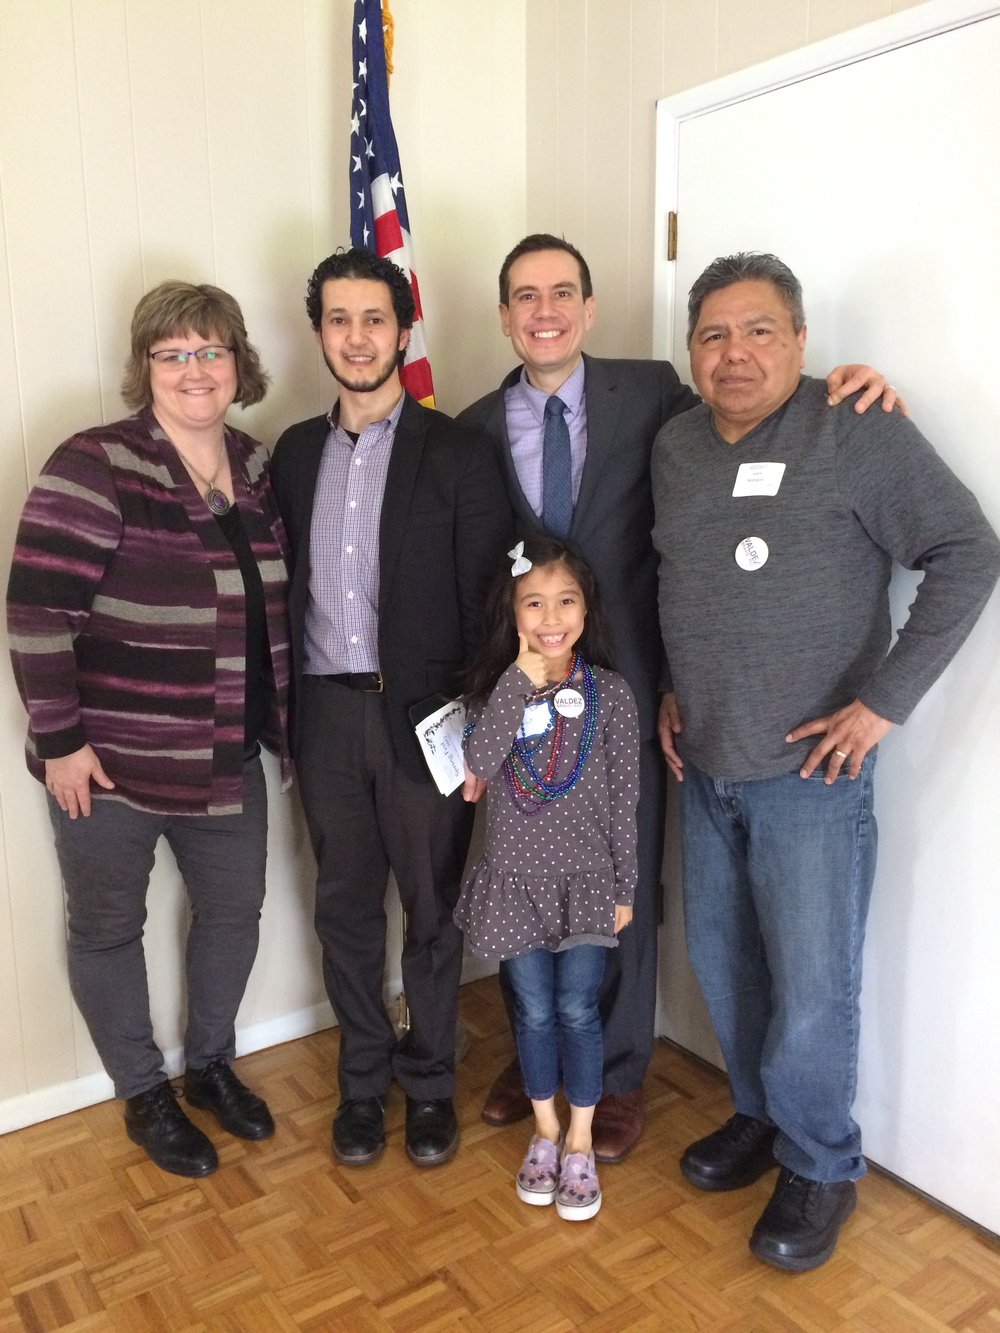 State Representative Janeen Sollman (HD 30), PCC Zone 6 Board Director Mohamed Alajyouri, Jaime Rodriguez (PCCFFAP VP of Political Action) and my daughter, Alani.